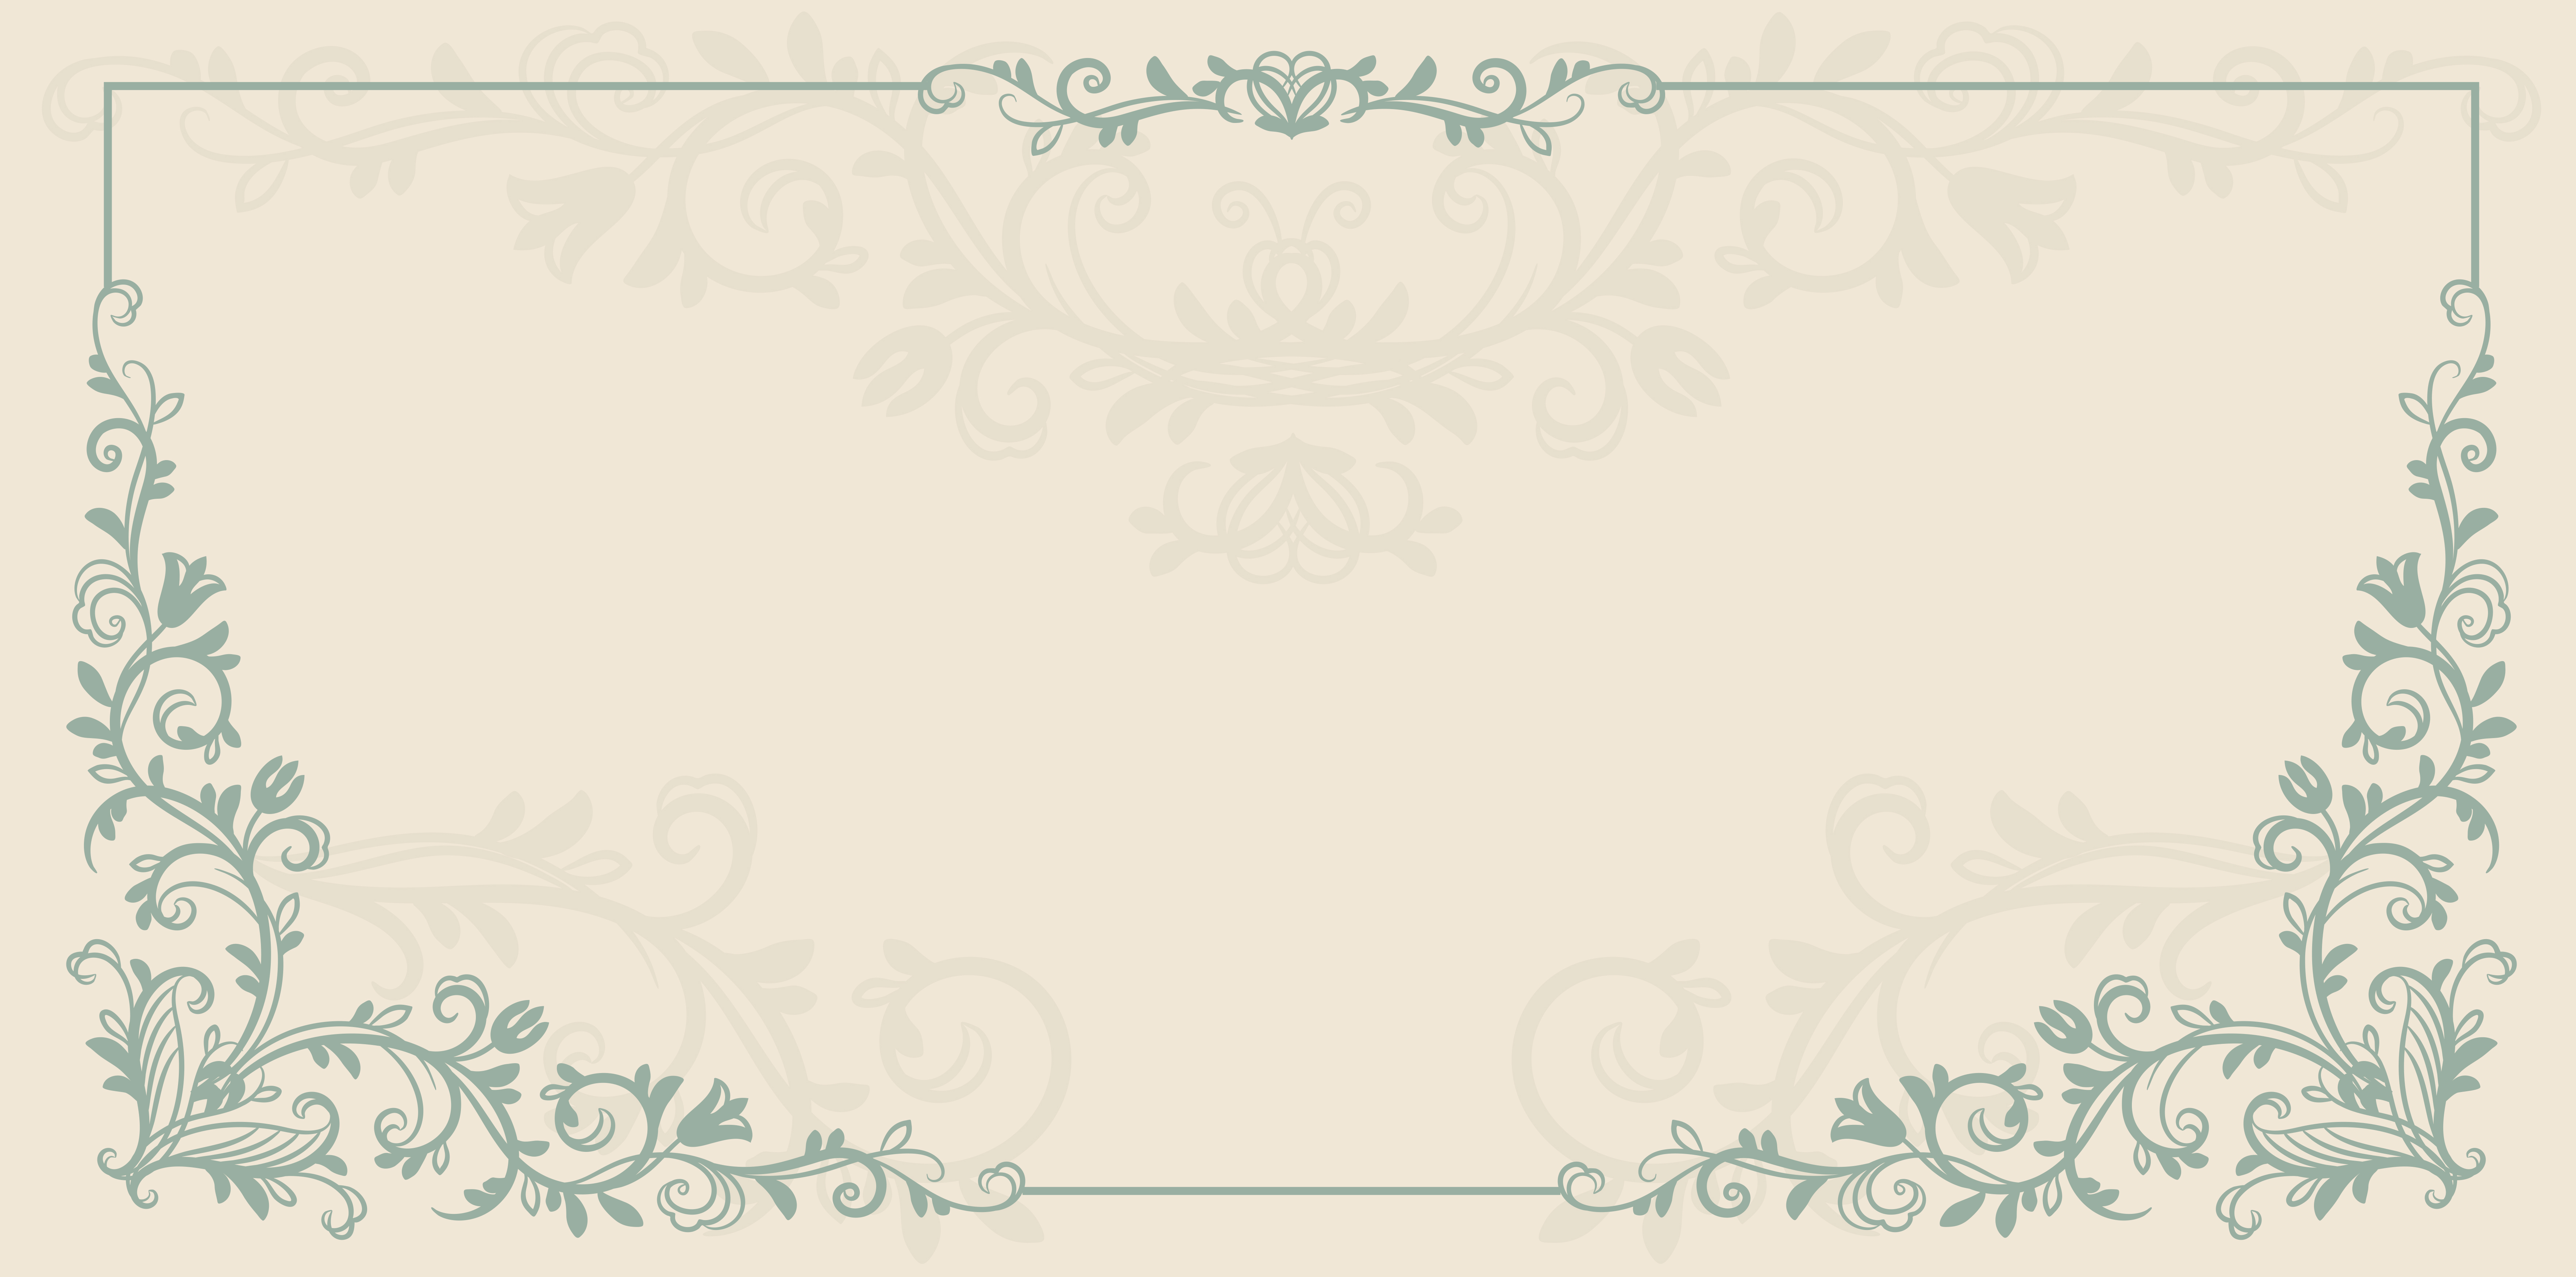 invitation card background photos  invitation card